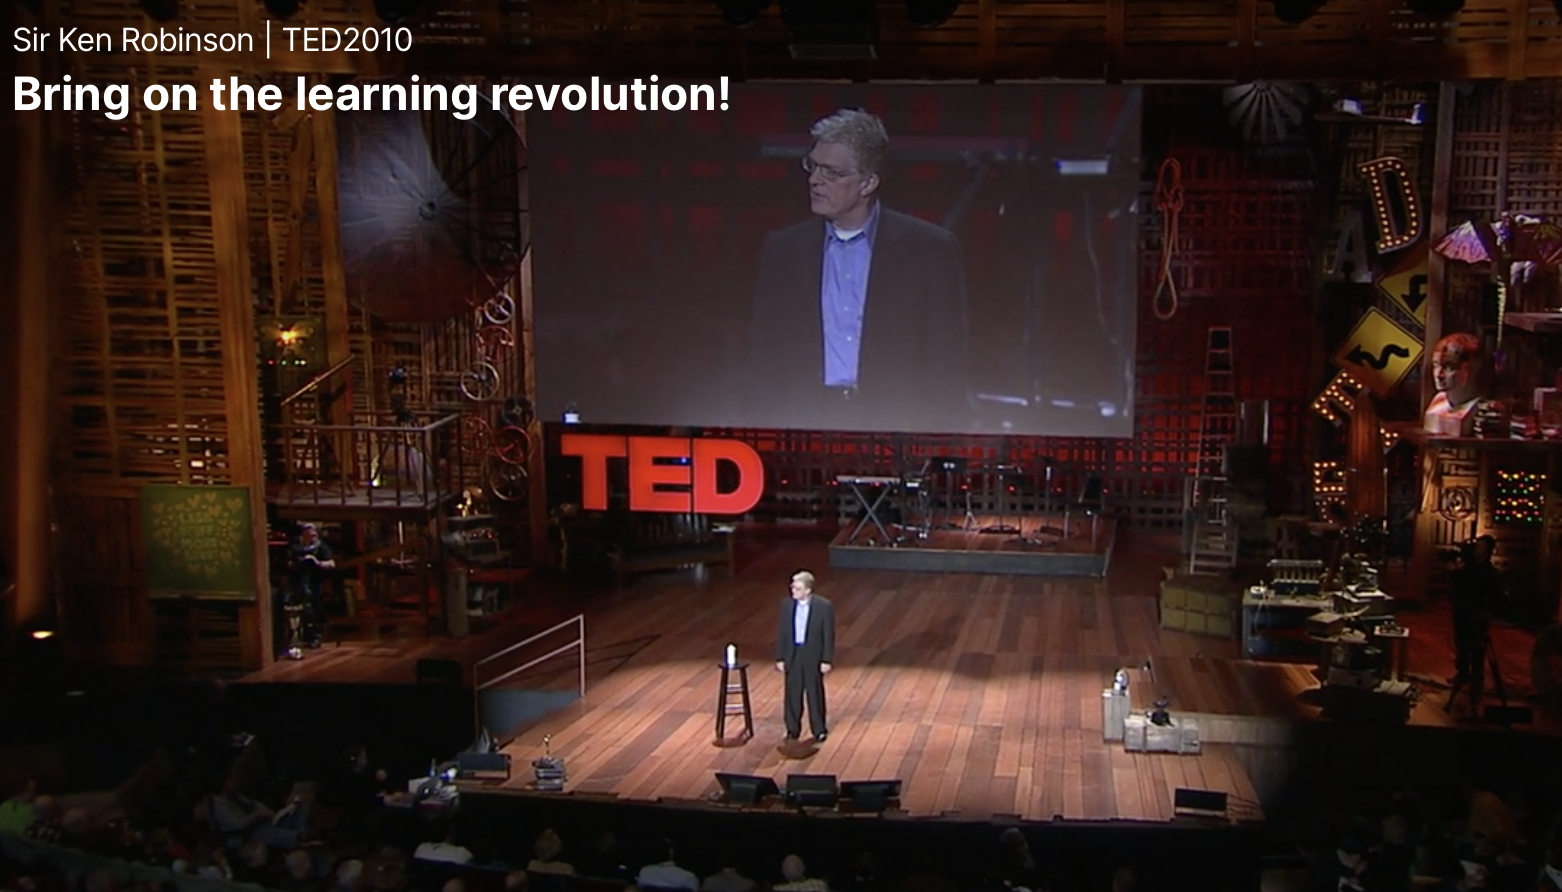 Bring on the learning revolution! Sir Ken Robinson